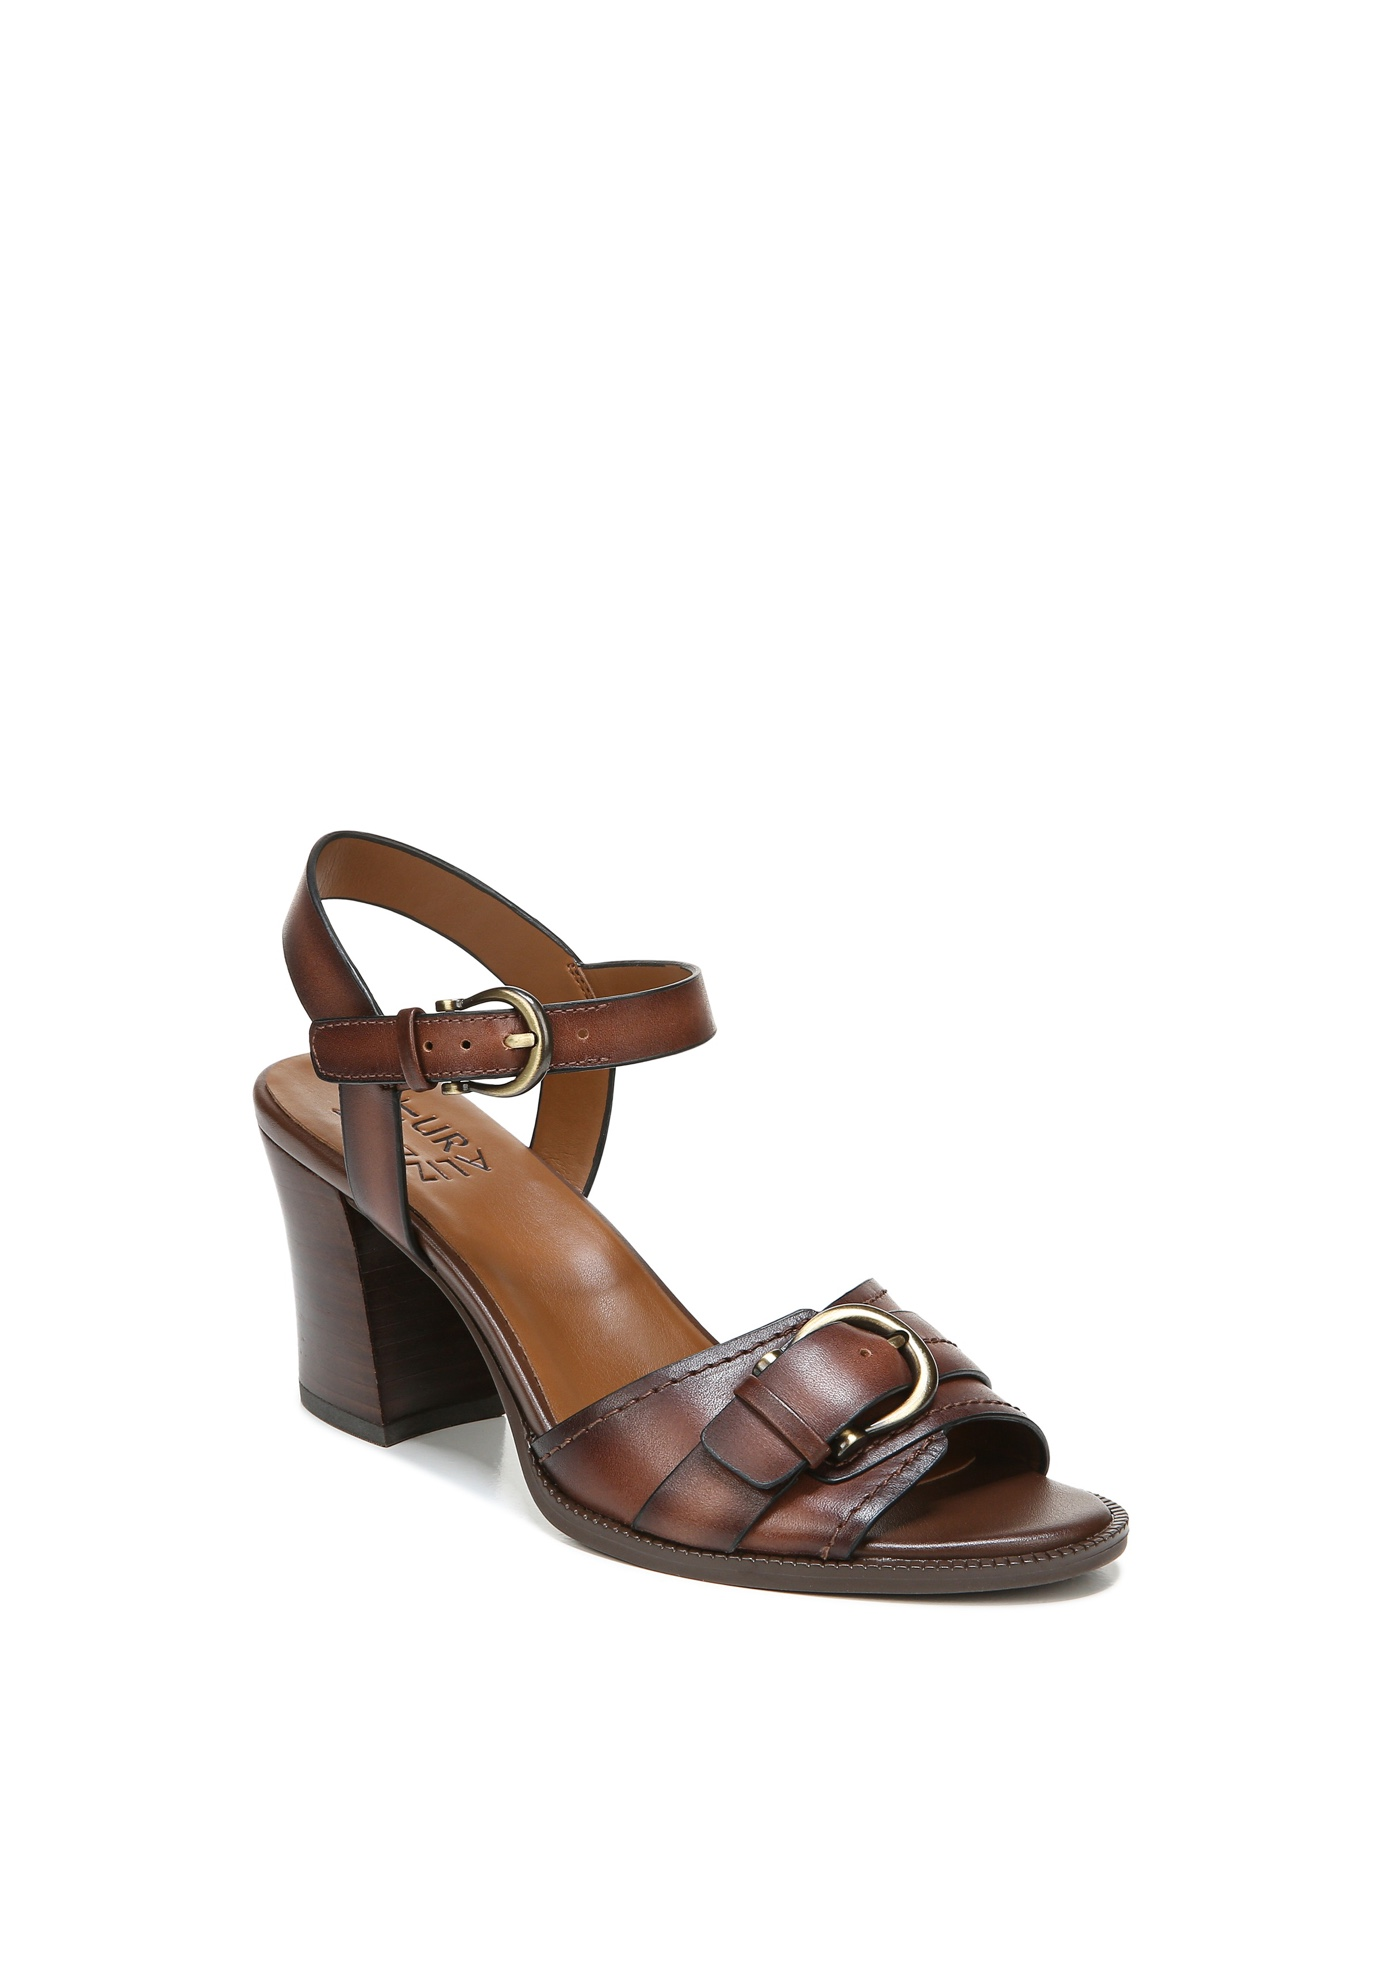 Malika Sandal from Naturalizer,